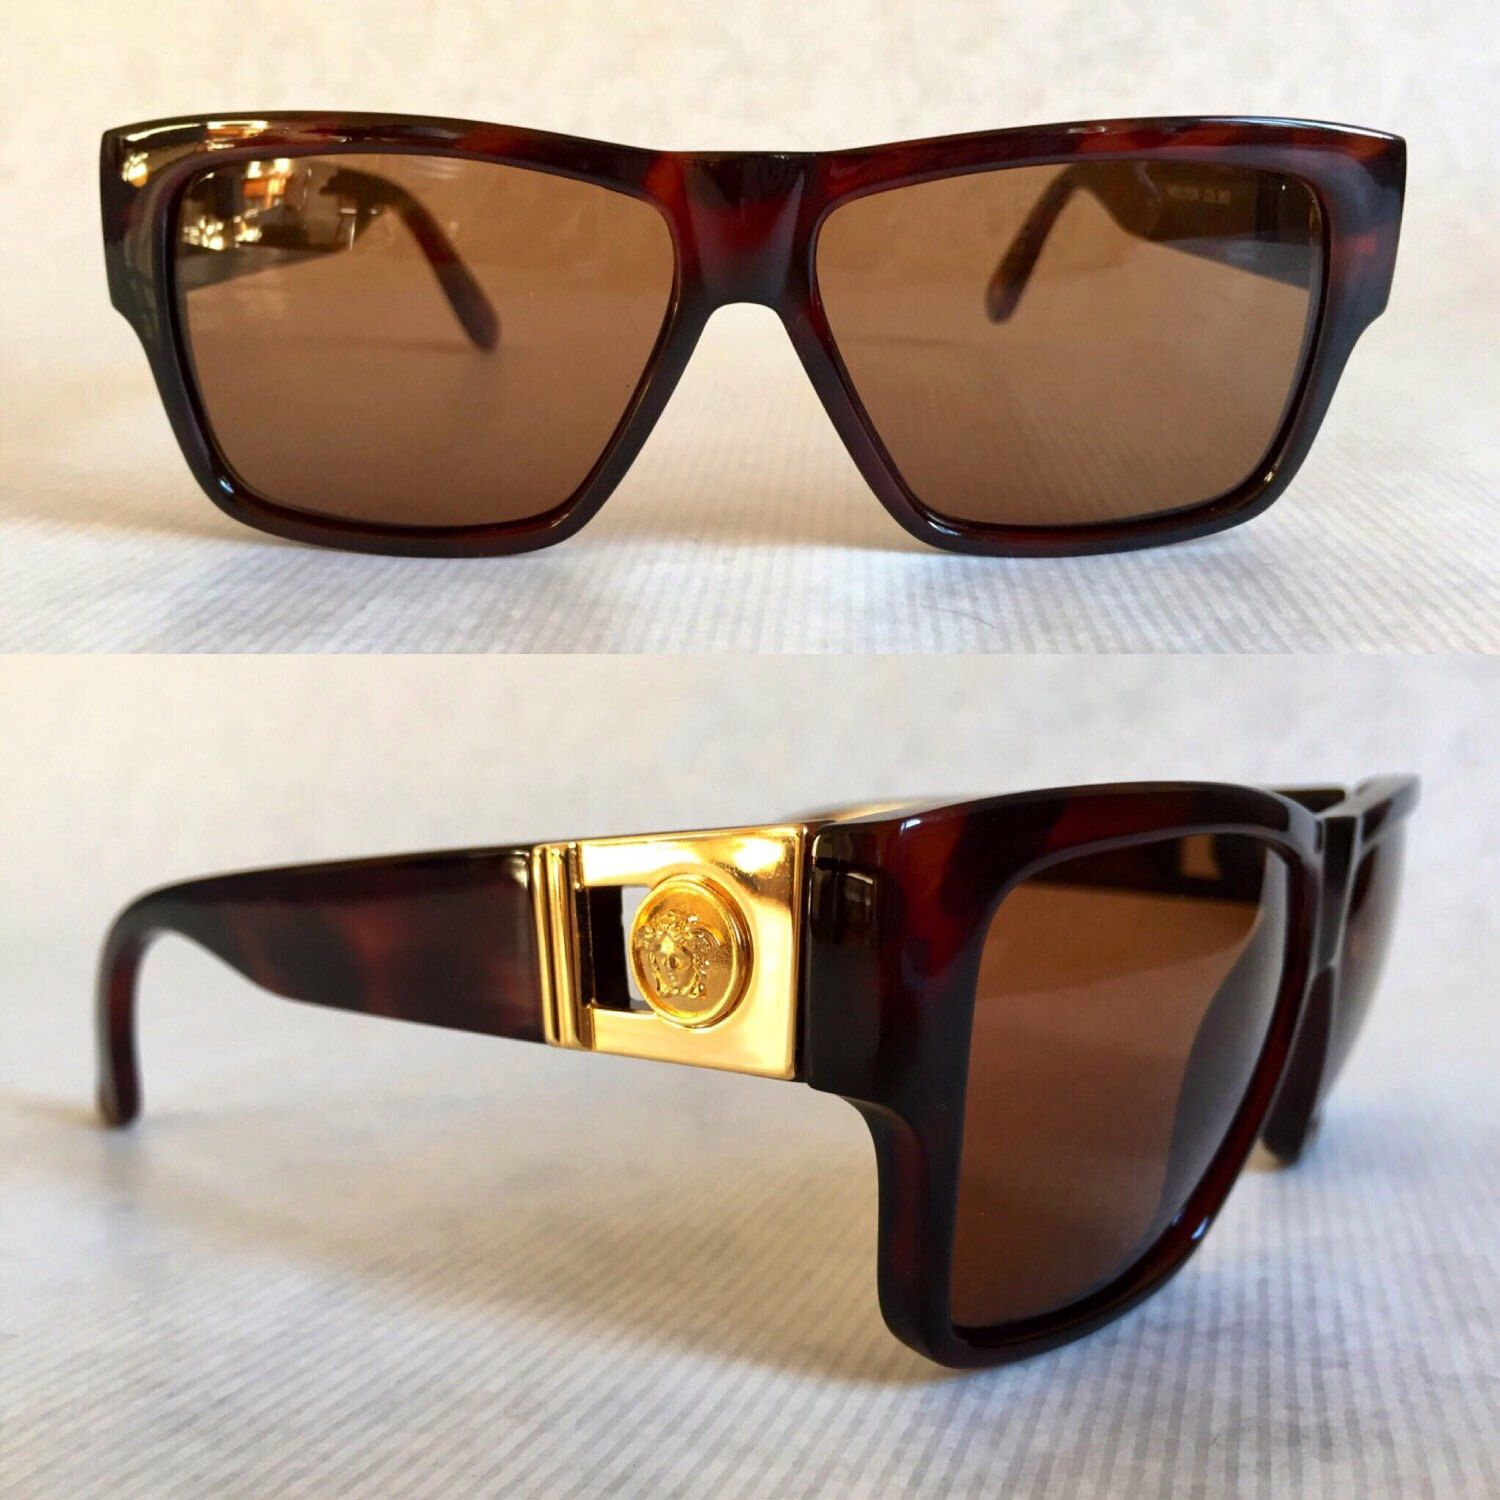 6424283885 Gianni Versace 372 A Col 900